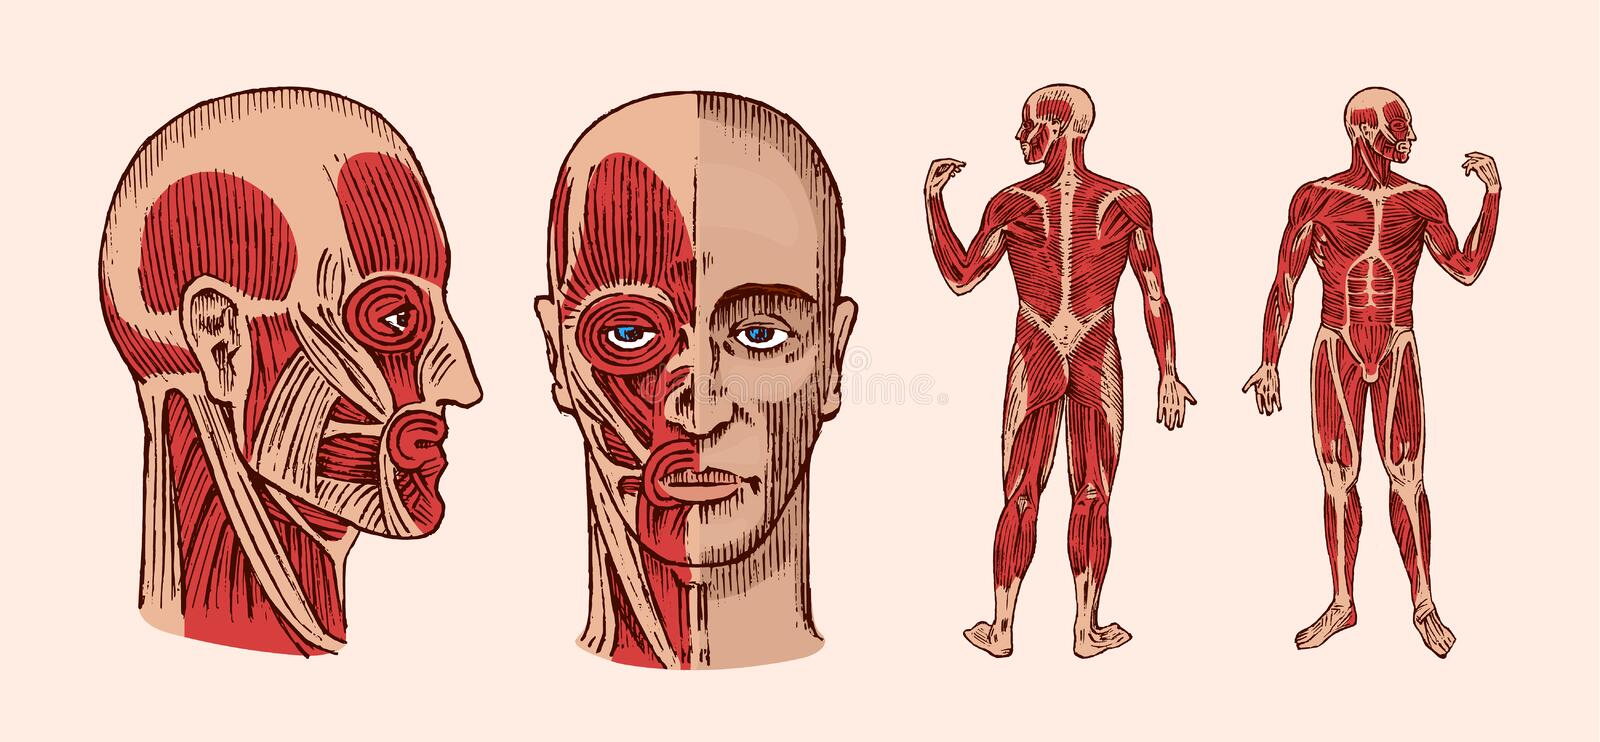 Human anatomy. Muscular and bone system of the head. Medical Vector illustration for science, medicine and biology. Male vector illustration